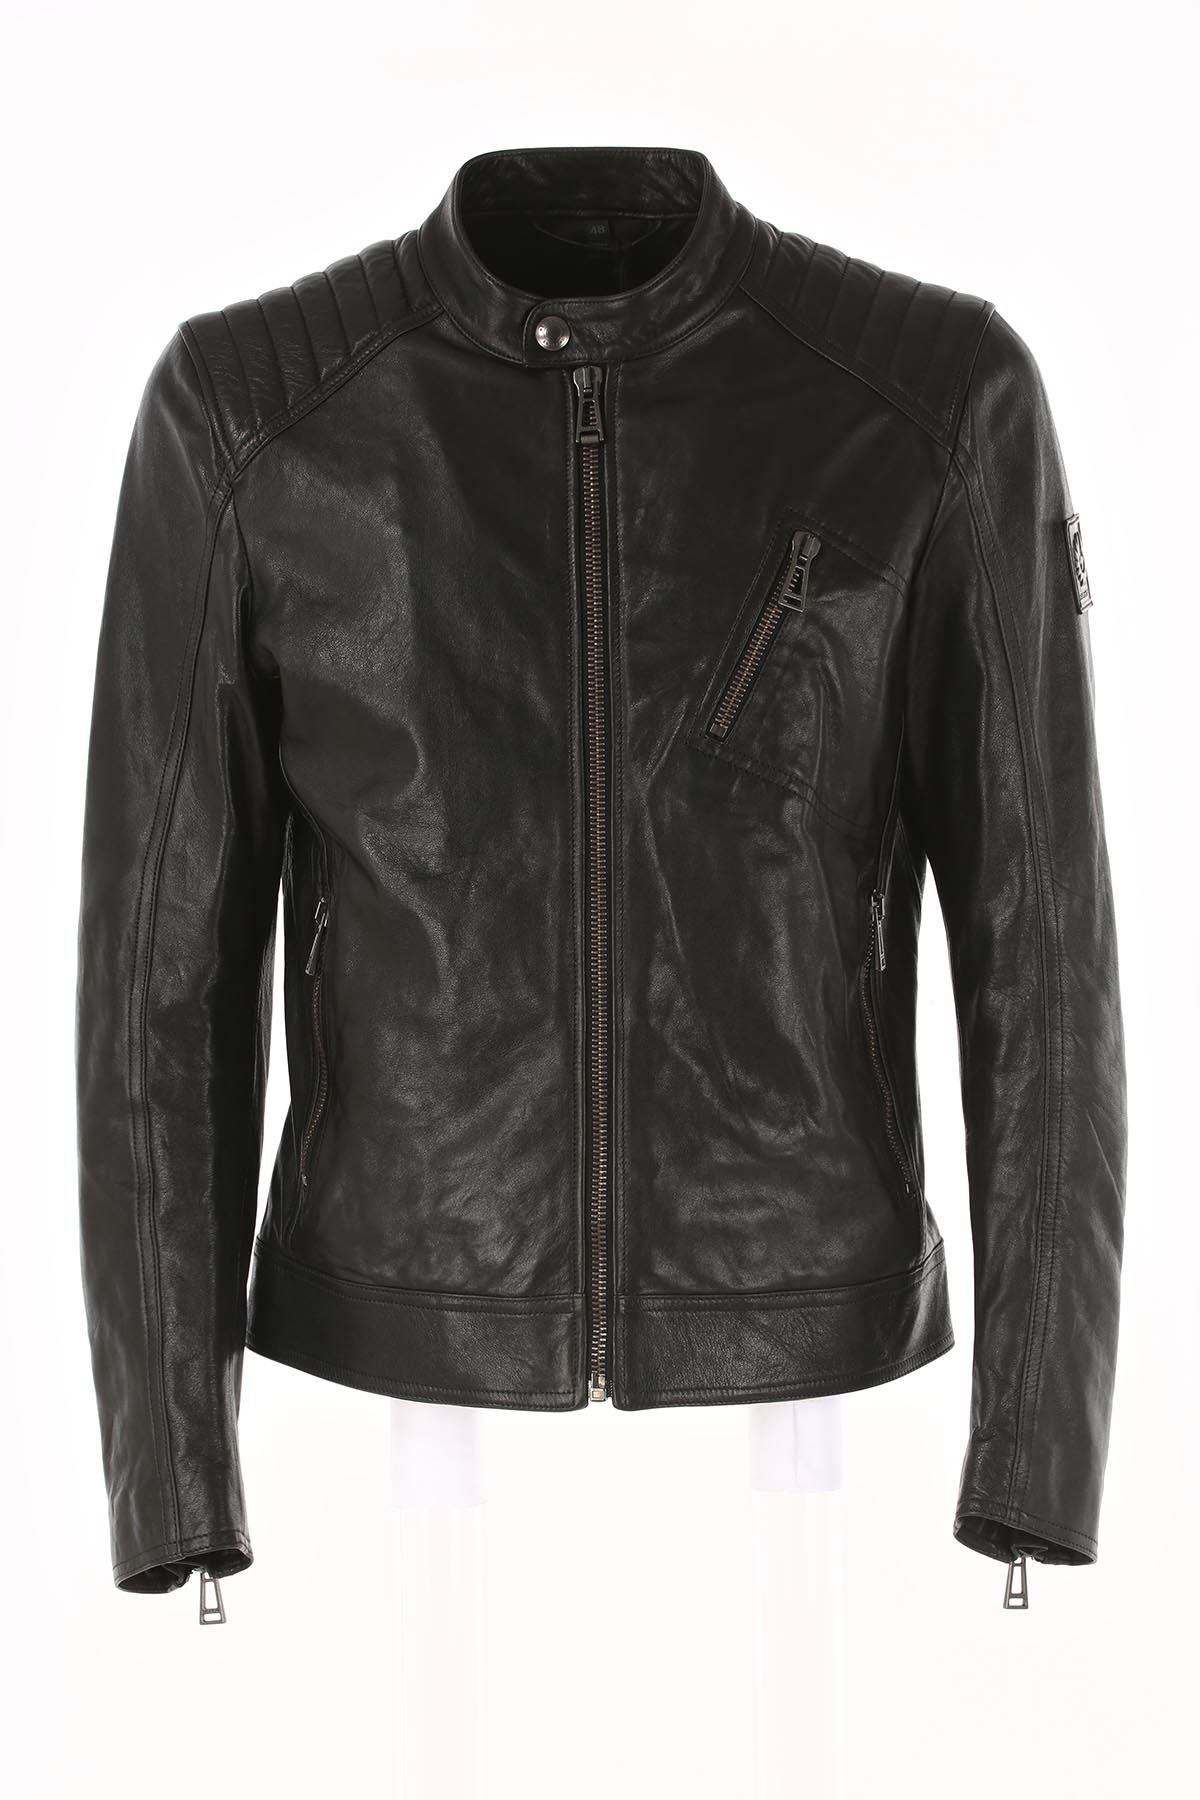 Belstaff Zipped Leather Jacket